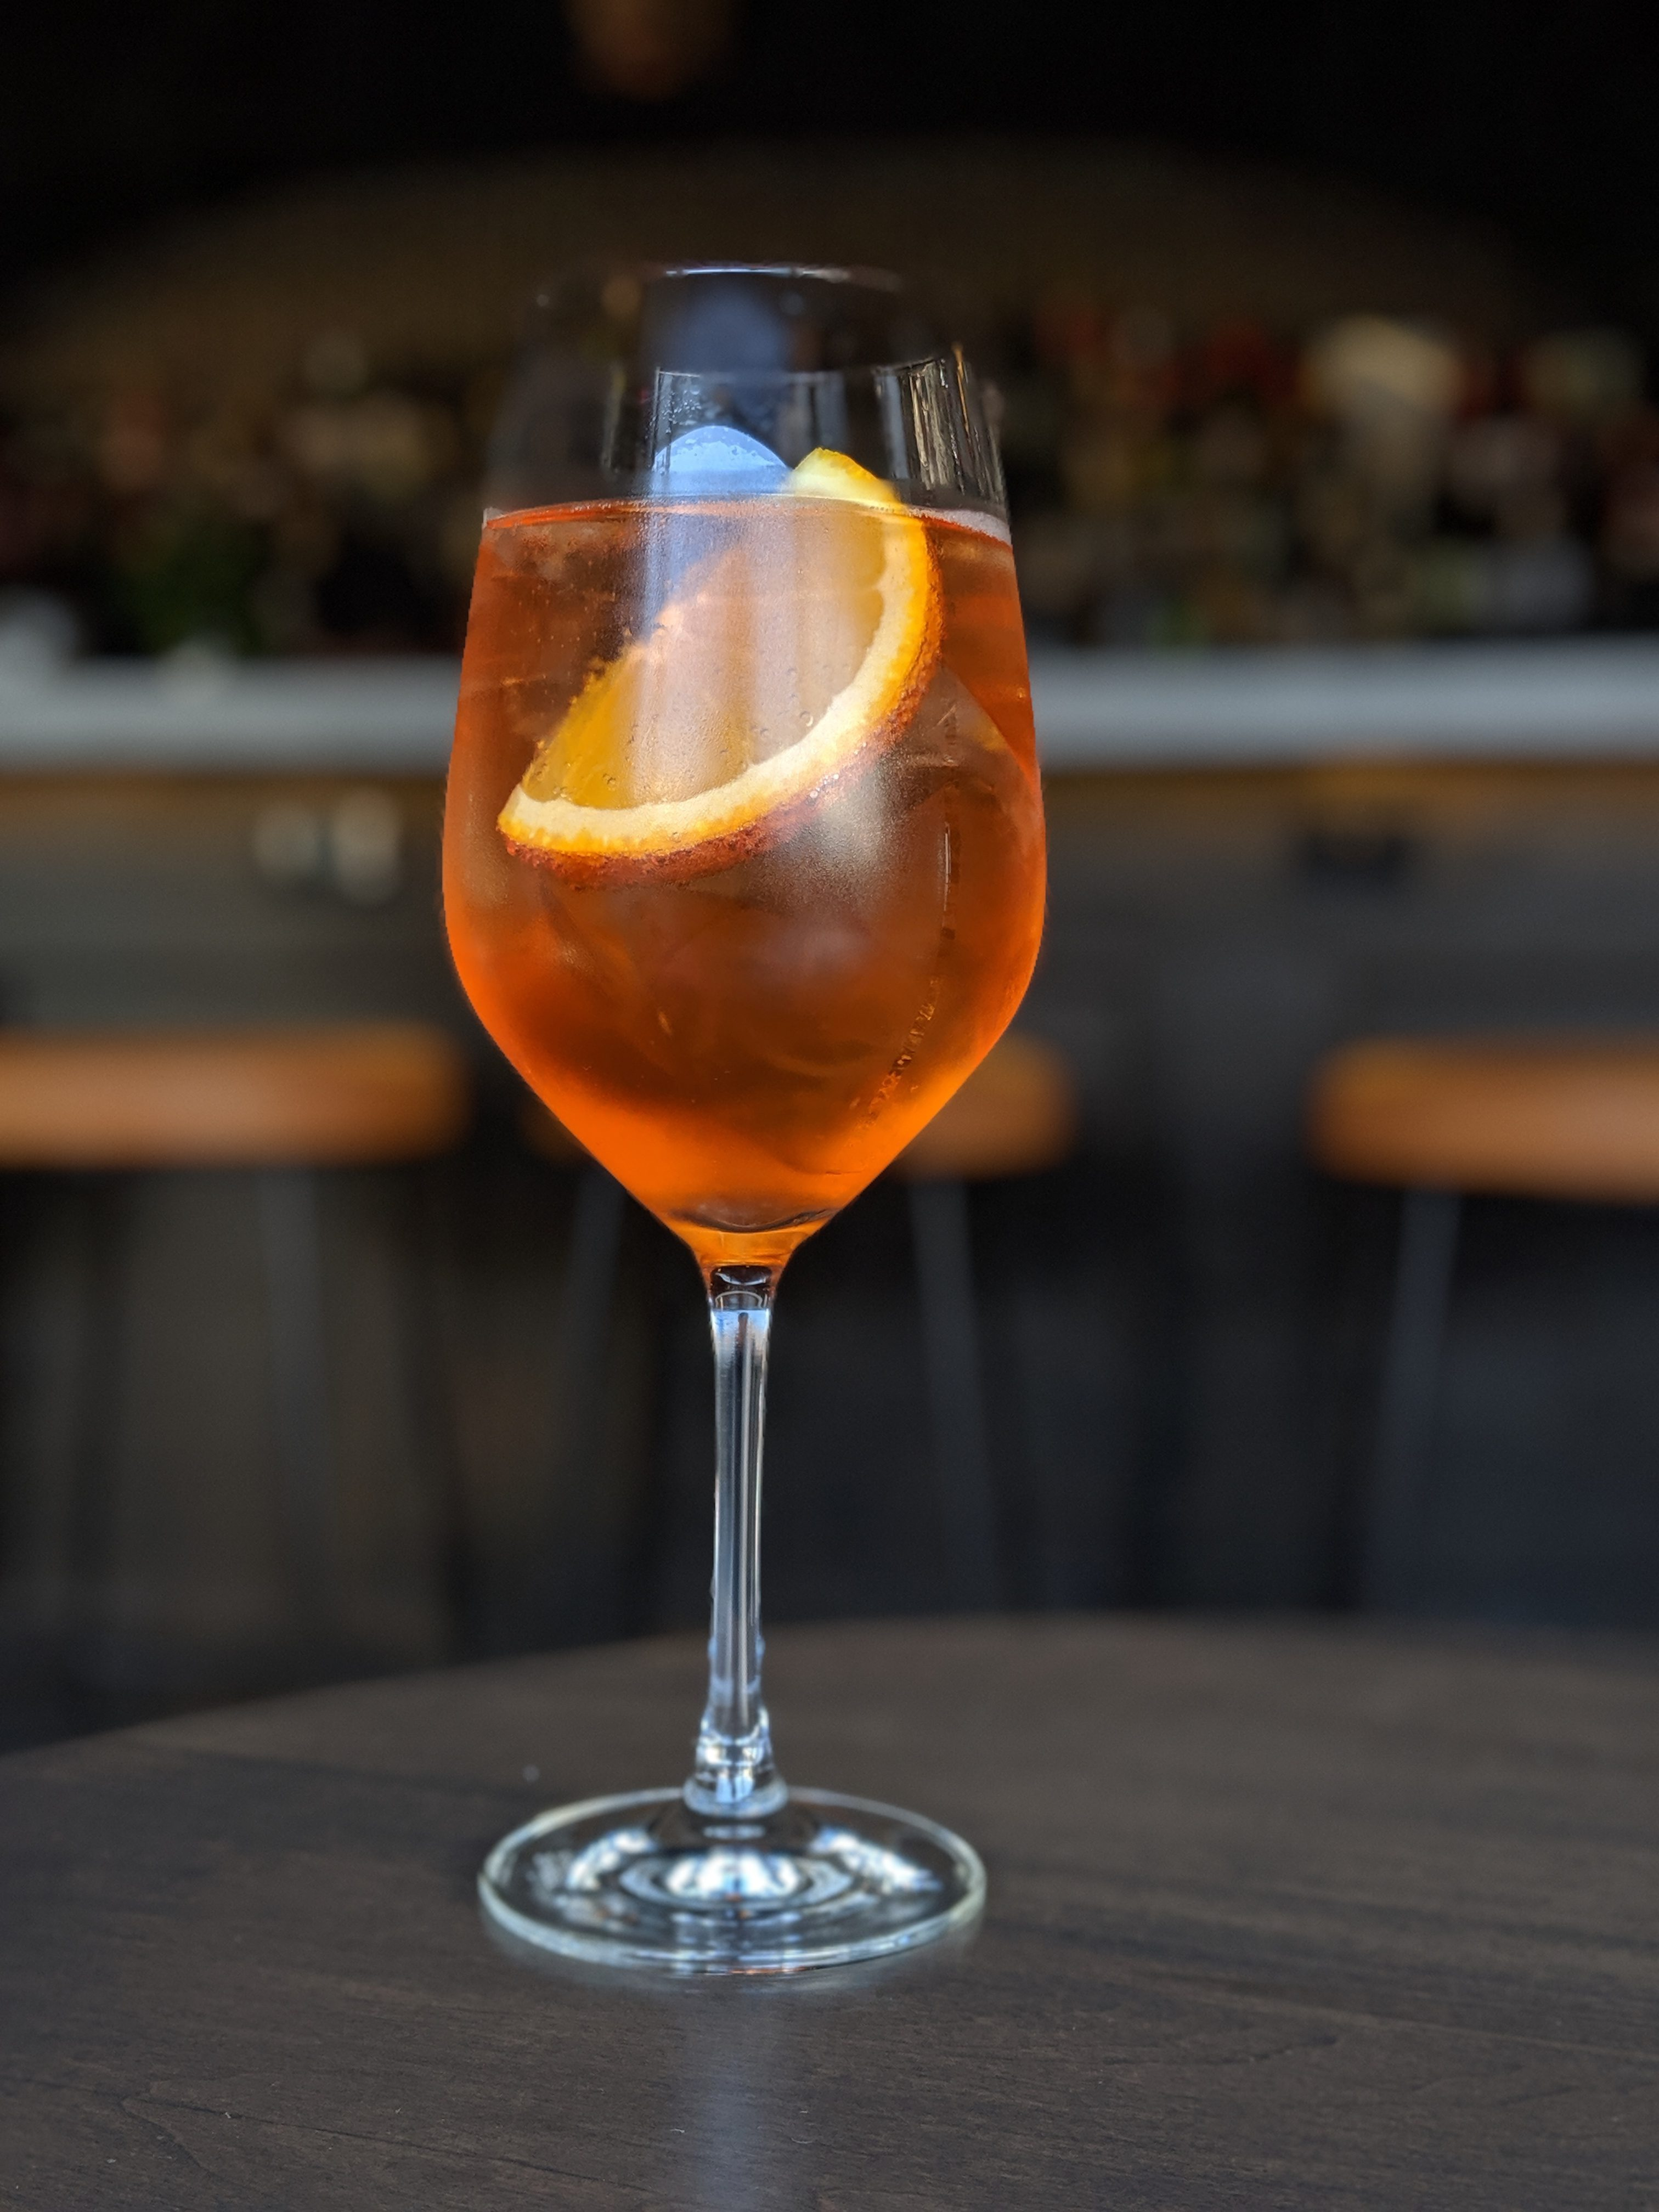 The Southern Spritz cocktail by Maiden Lane Wine Spirits in Windsor, Ontario.